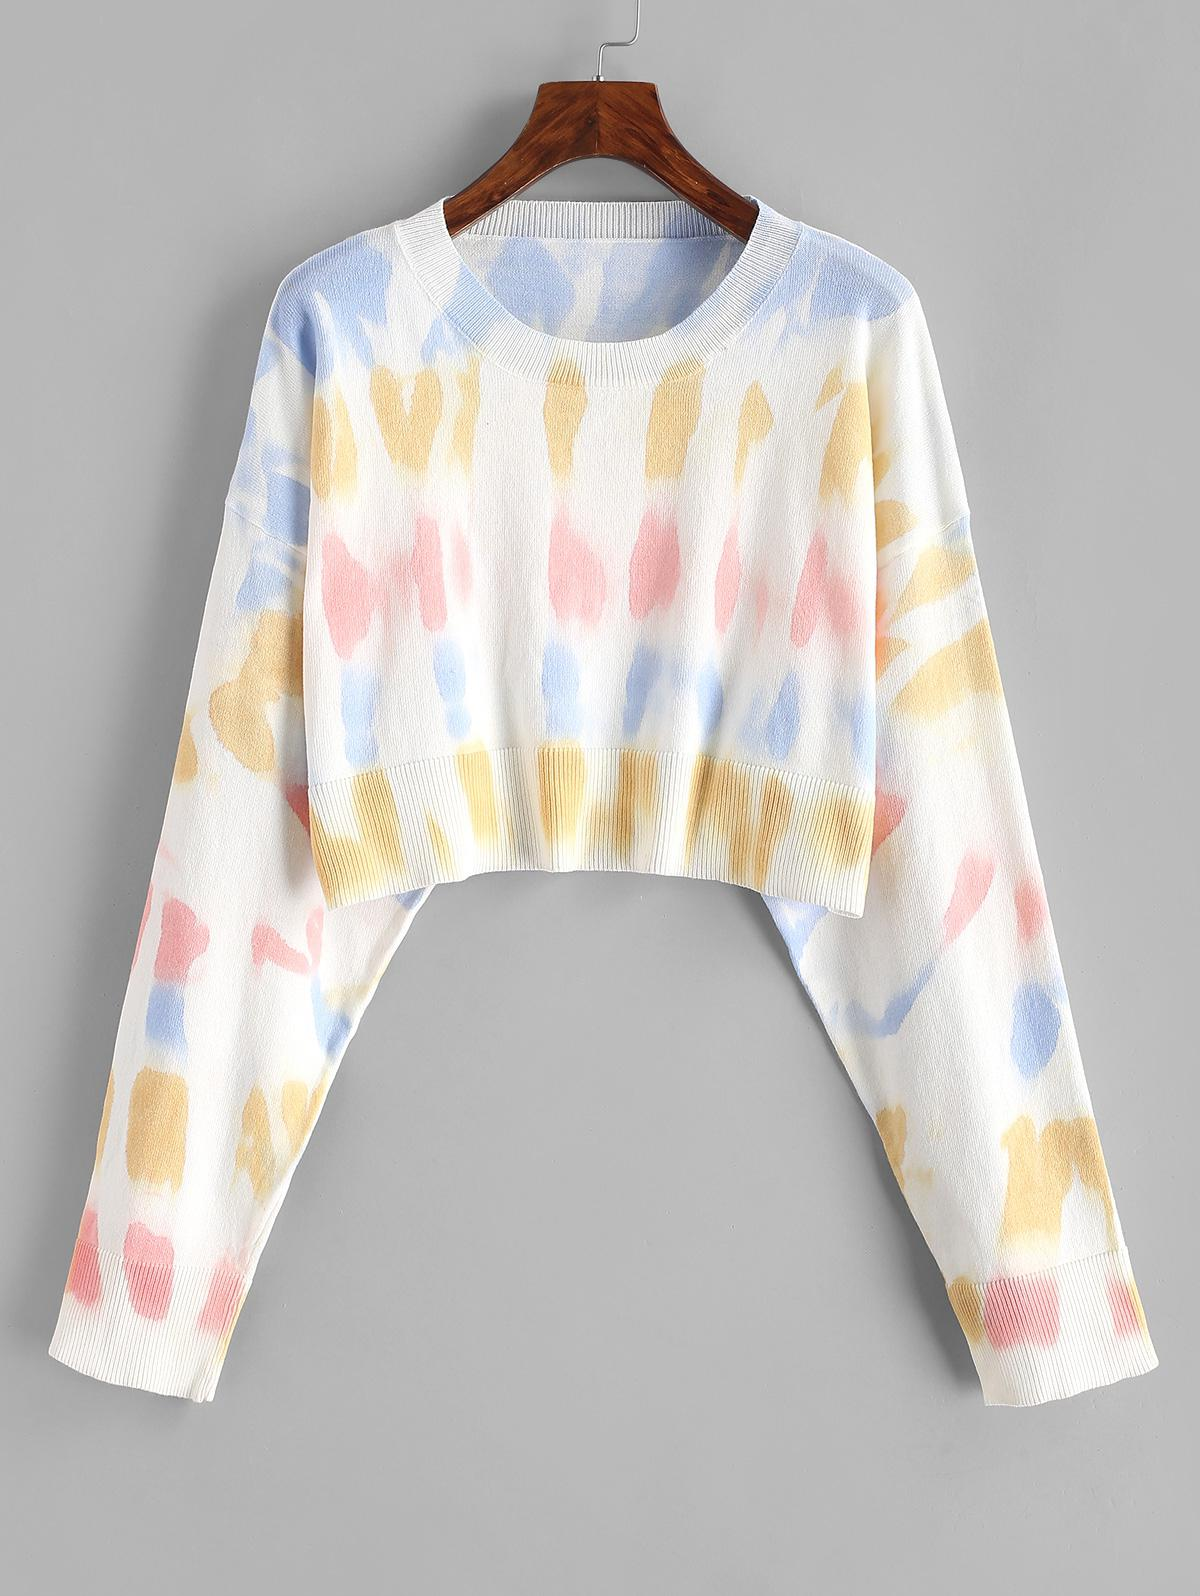 Crew Neck Cropped Tie Dye Sweater